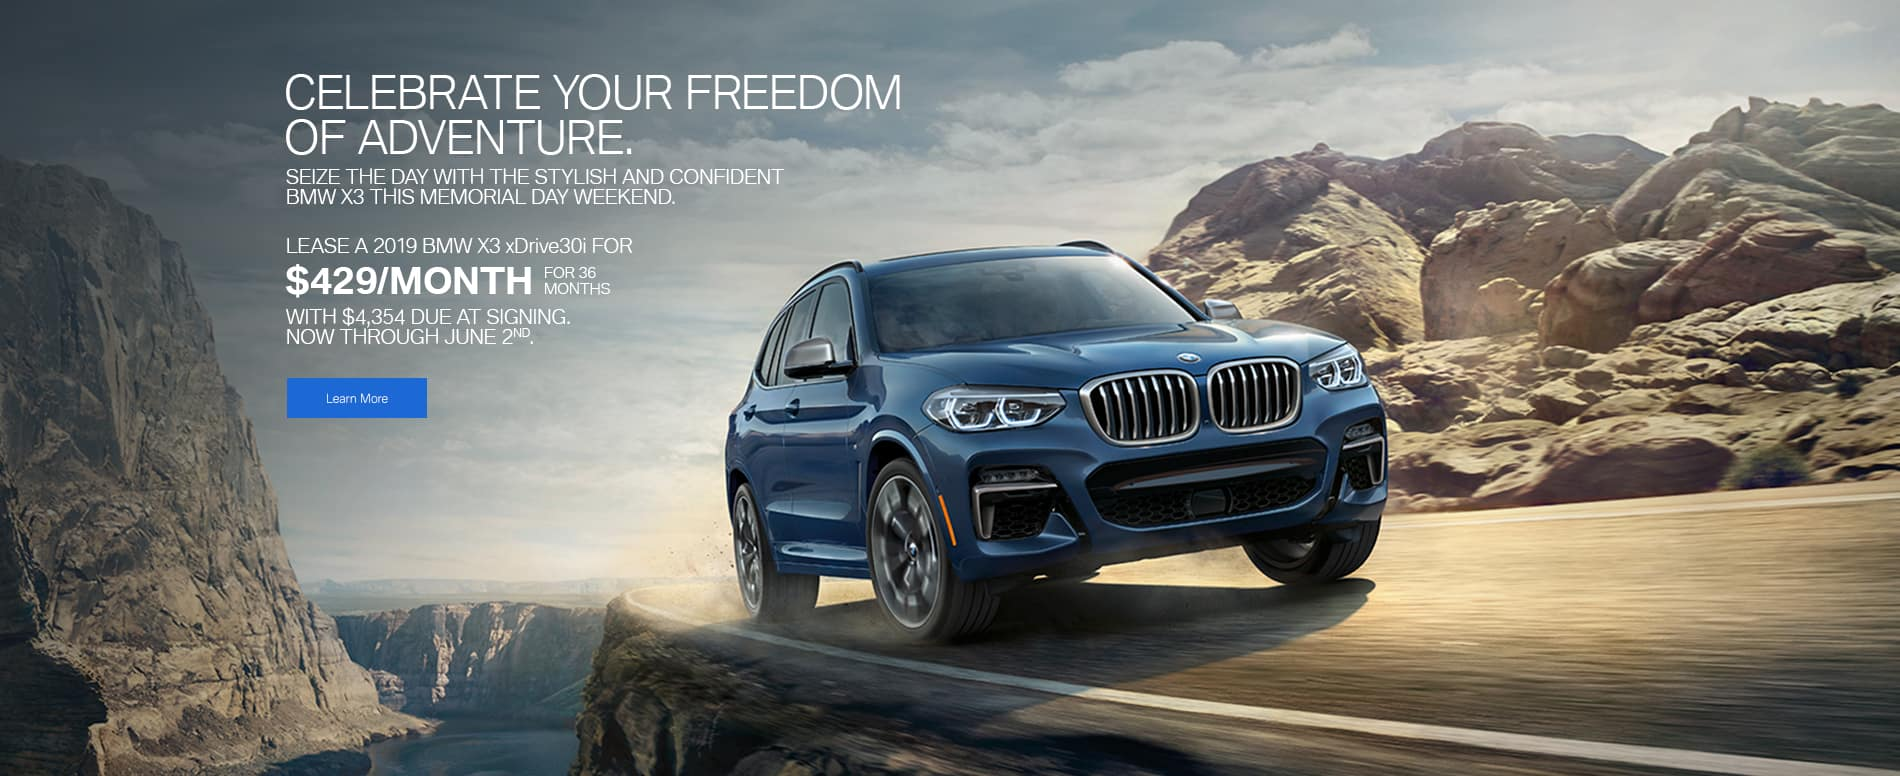 bmw x3 memorial day 2019